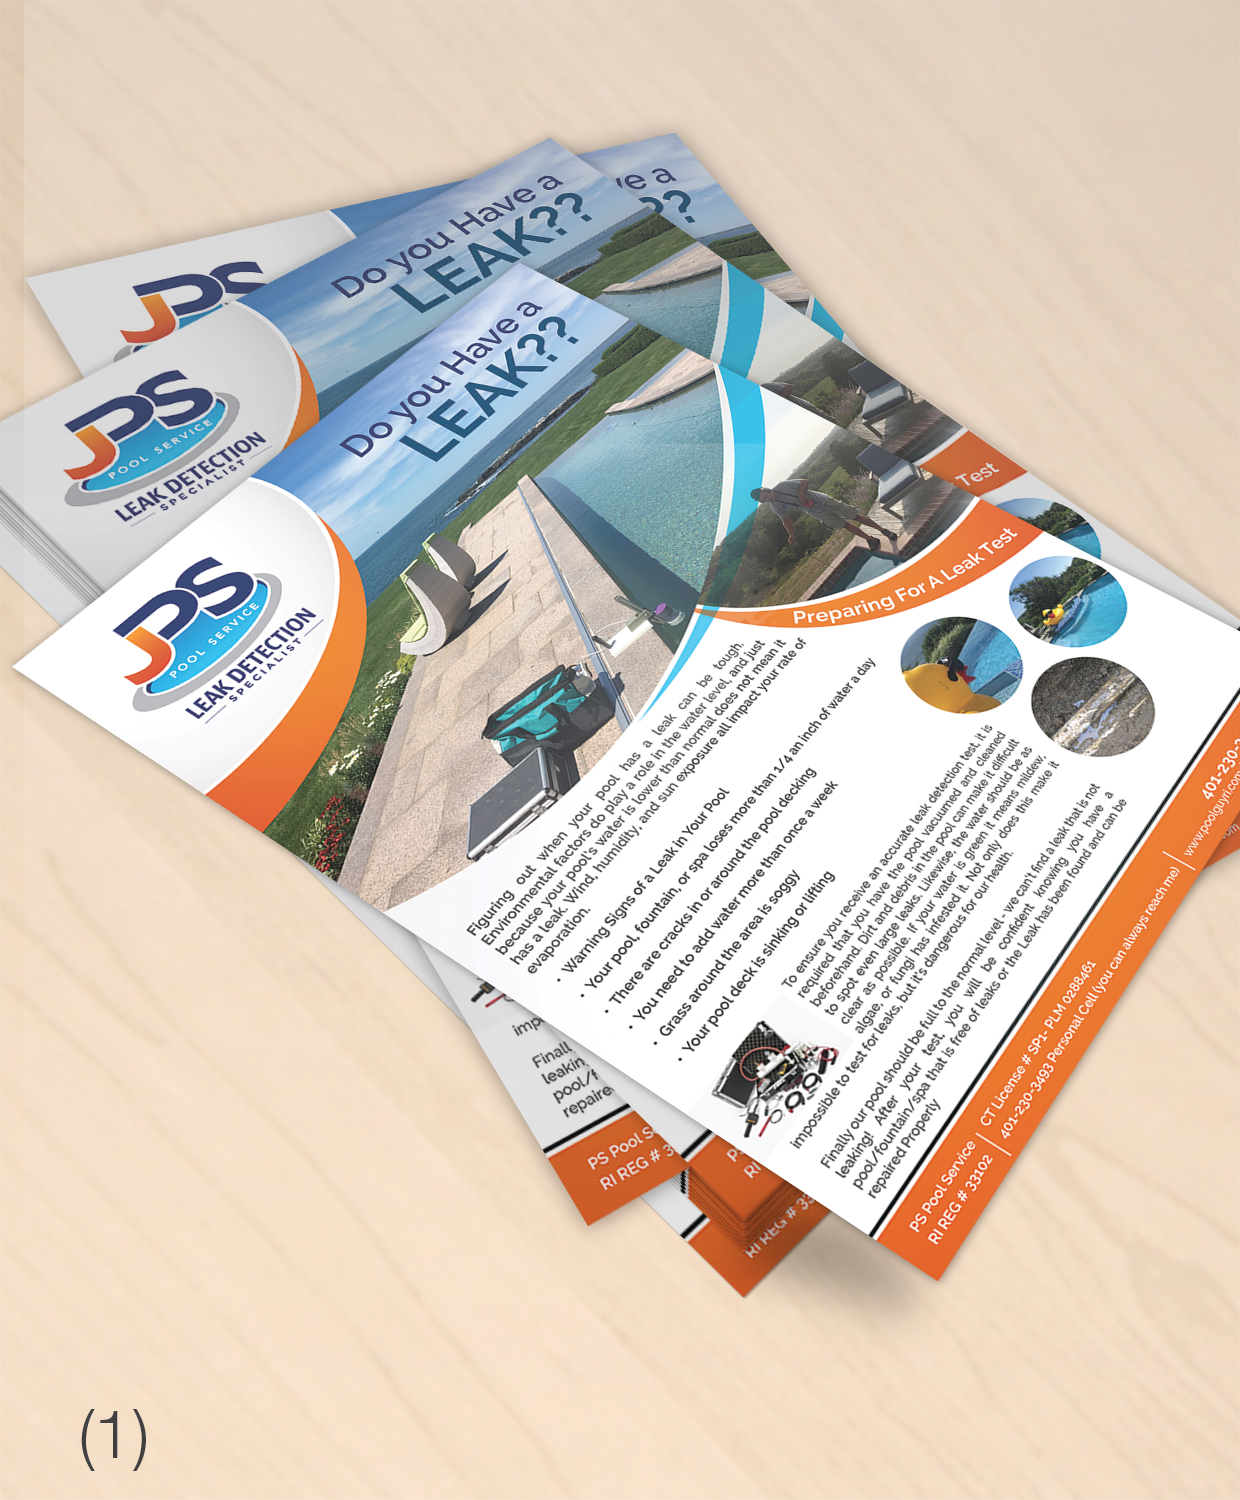 pool service ad. Brochure Design By Designanddevelopment For JPS POOL SERVICE    #17050062 Pool Service Ad